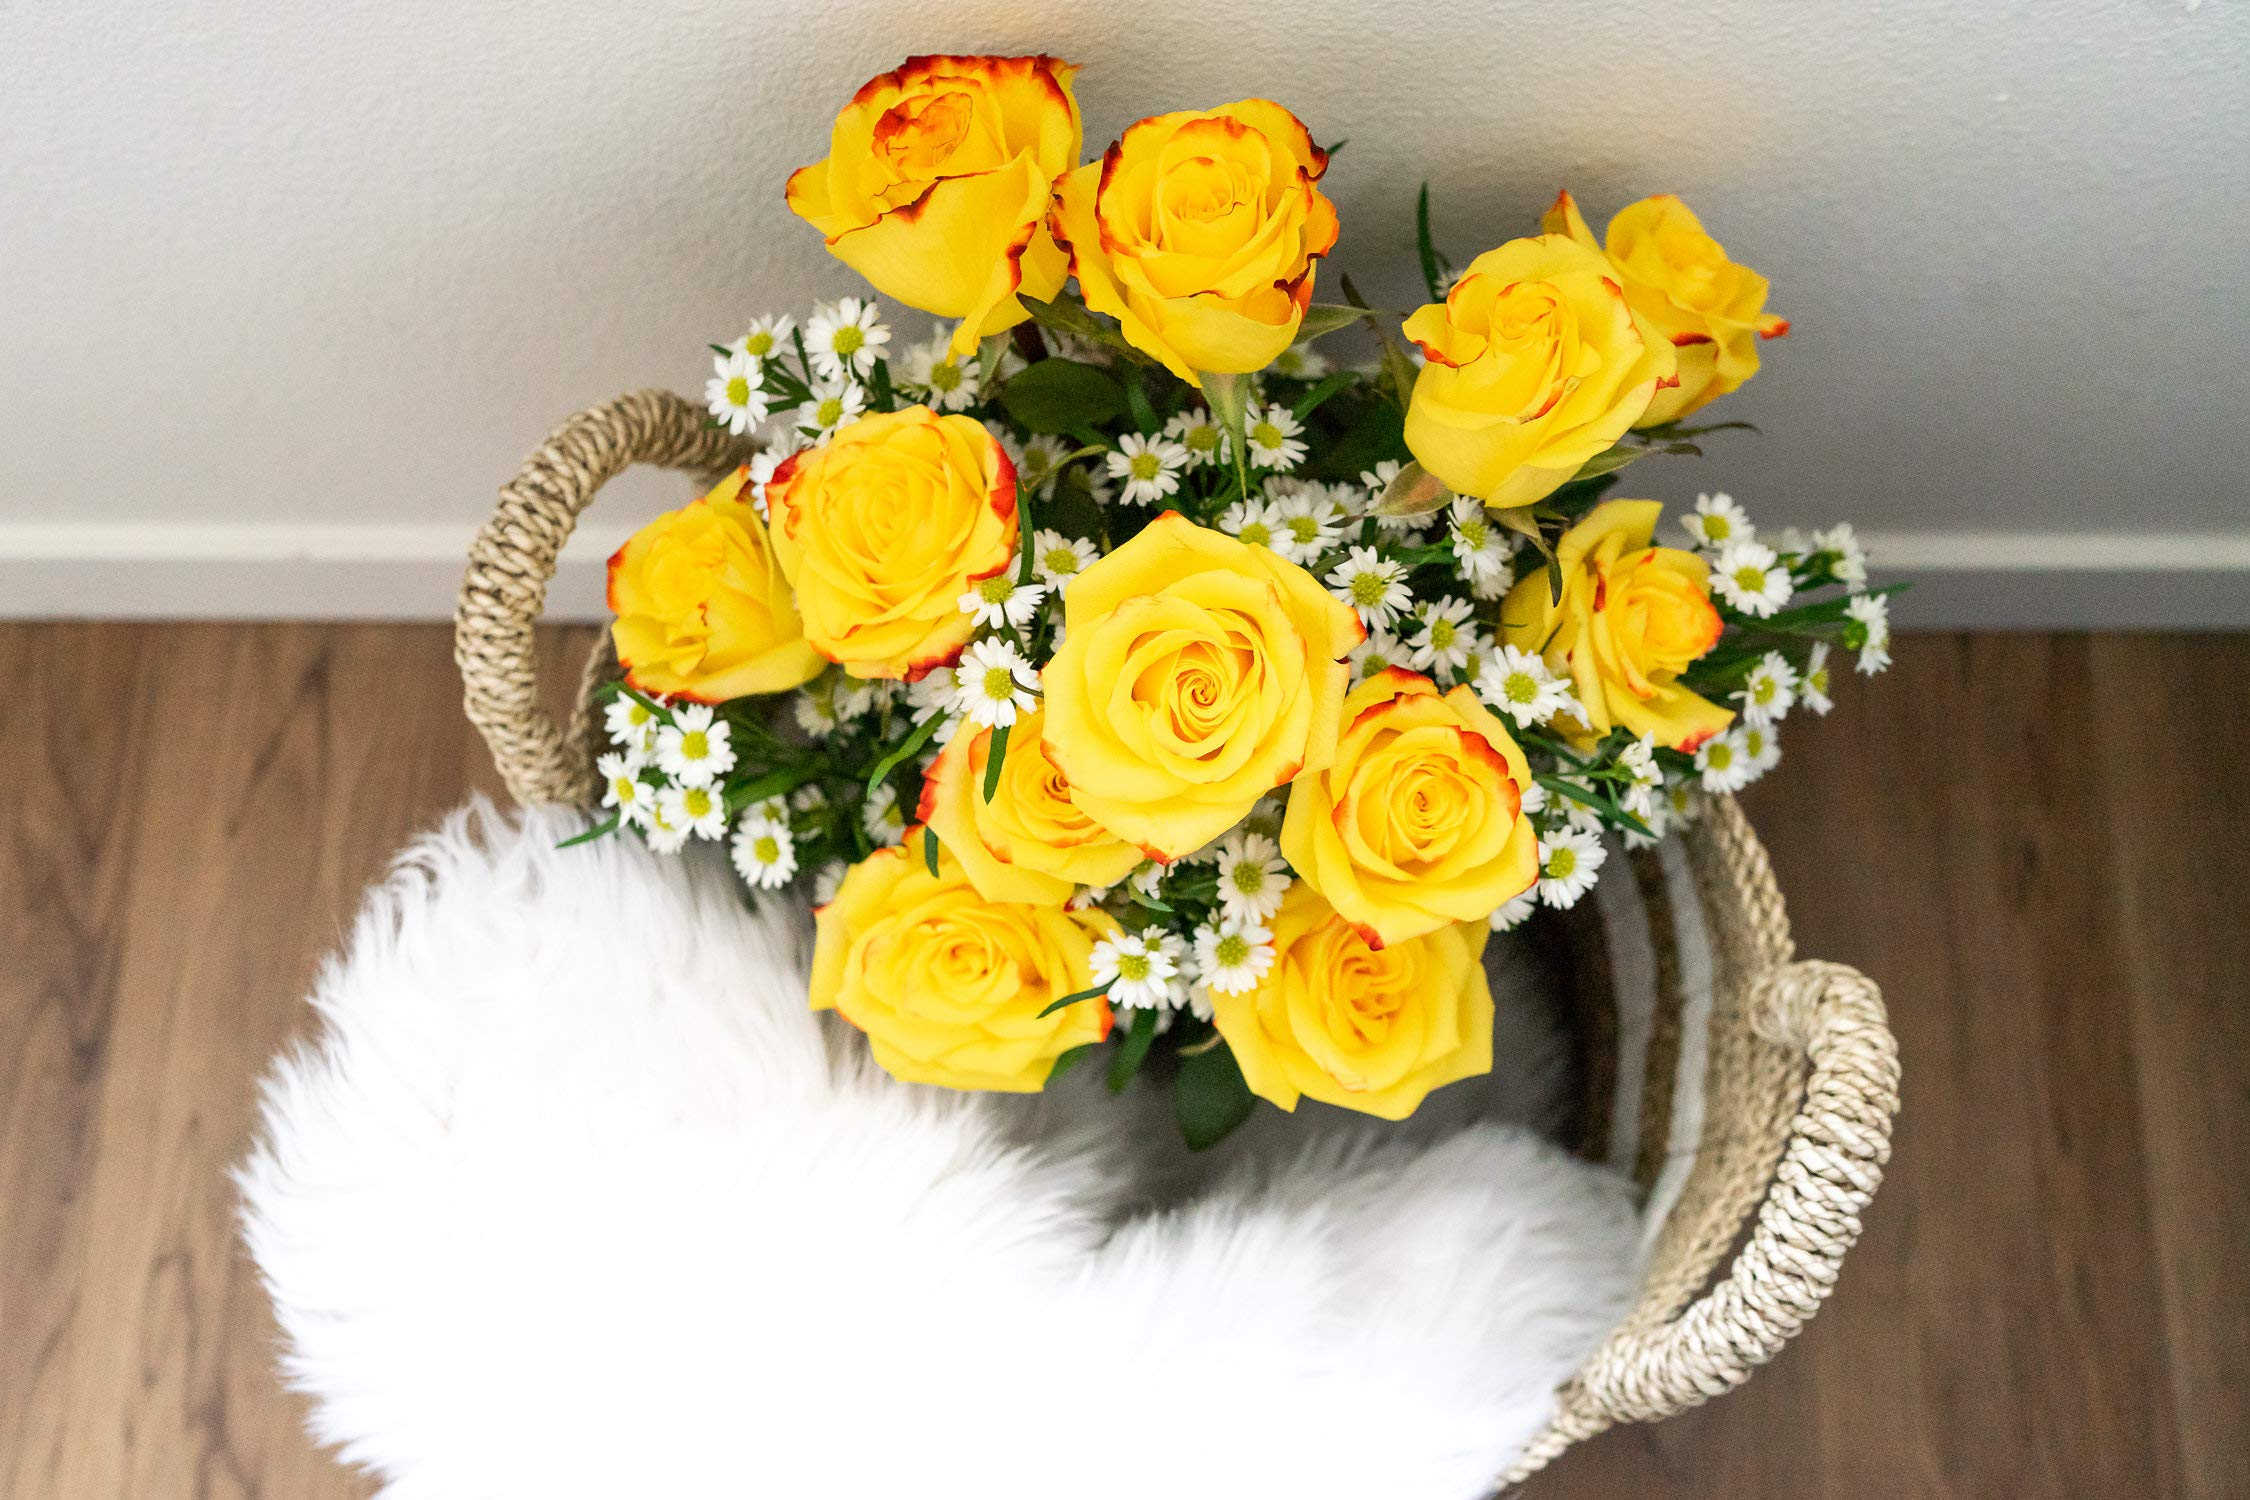 Flowers - One Dozen Festive Roses (Free Vase Included) by From You Flowers (Image #5)